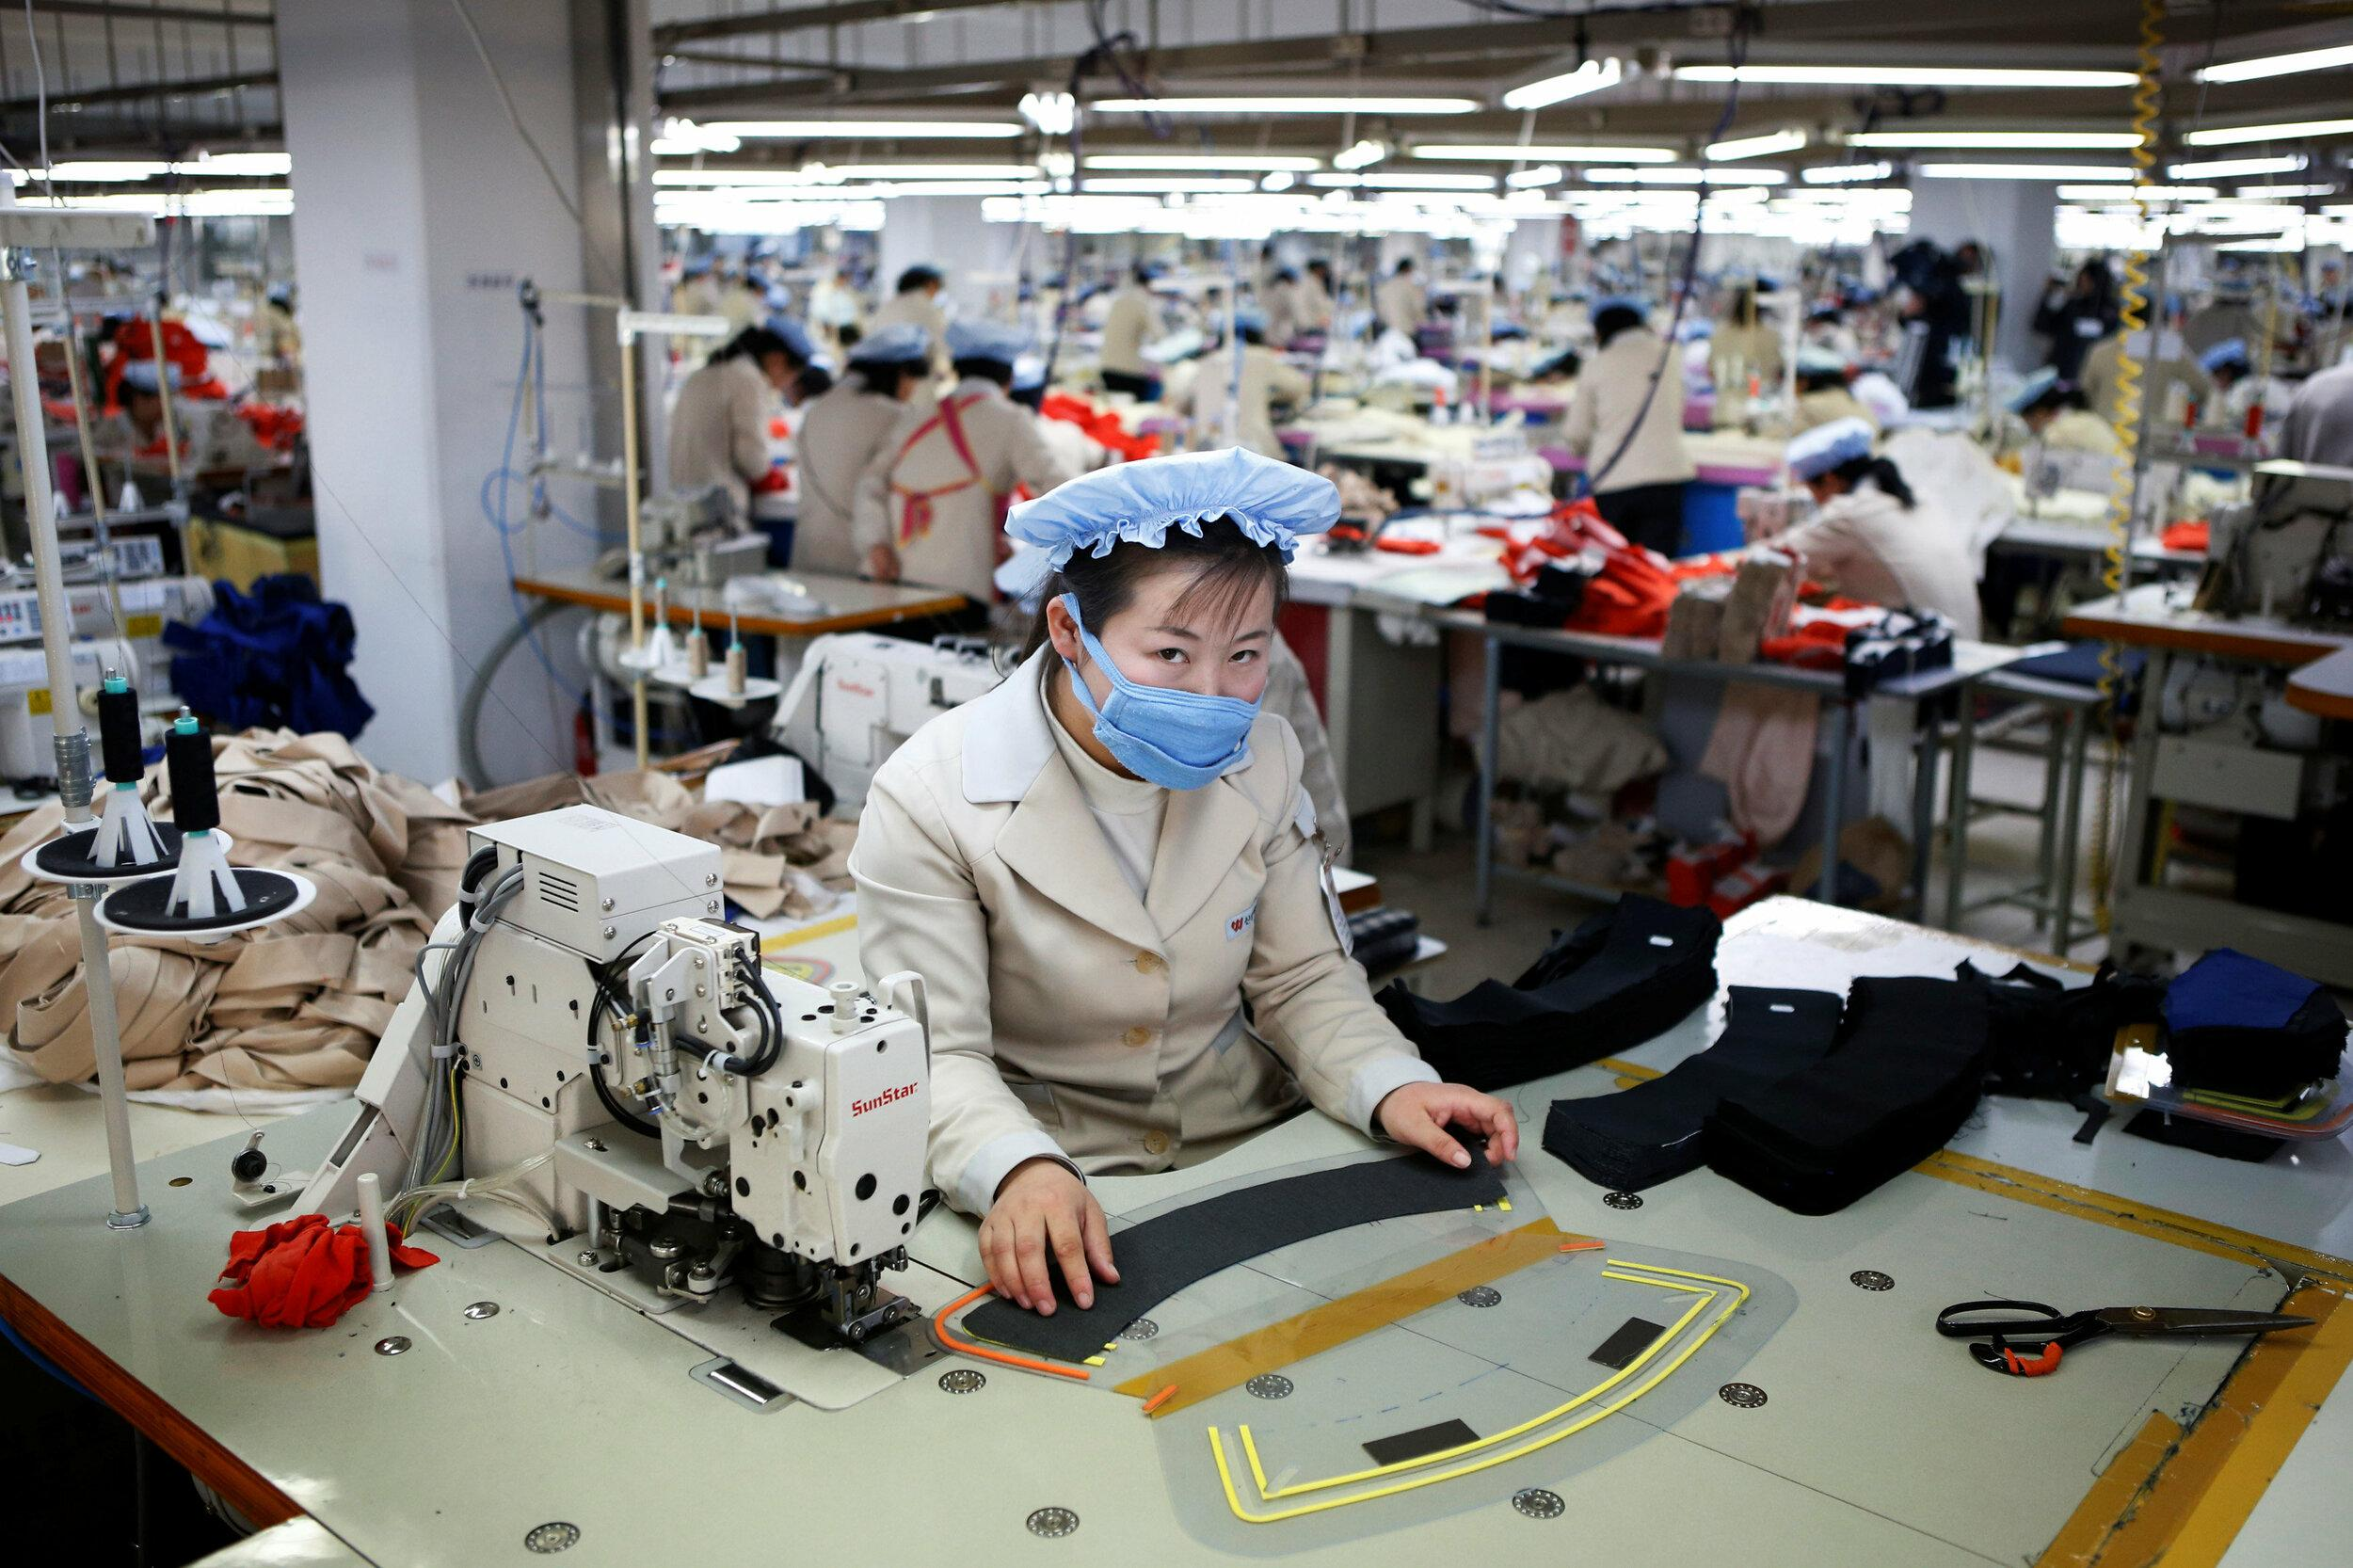 FILE PHOTO - A North Korean employee works in a factory of a South Korean company at the Joint Industrial Park in Kaesong industrial zone, a few miles inside North Korea from the heavily fortified border December 19, 2013.  REUTERS/Kim Hong-Ji/File Photo